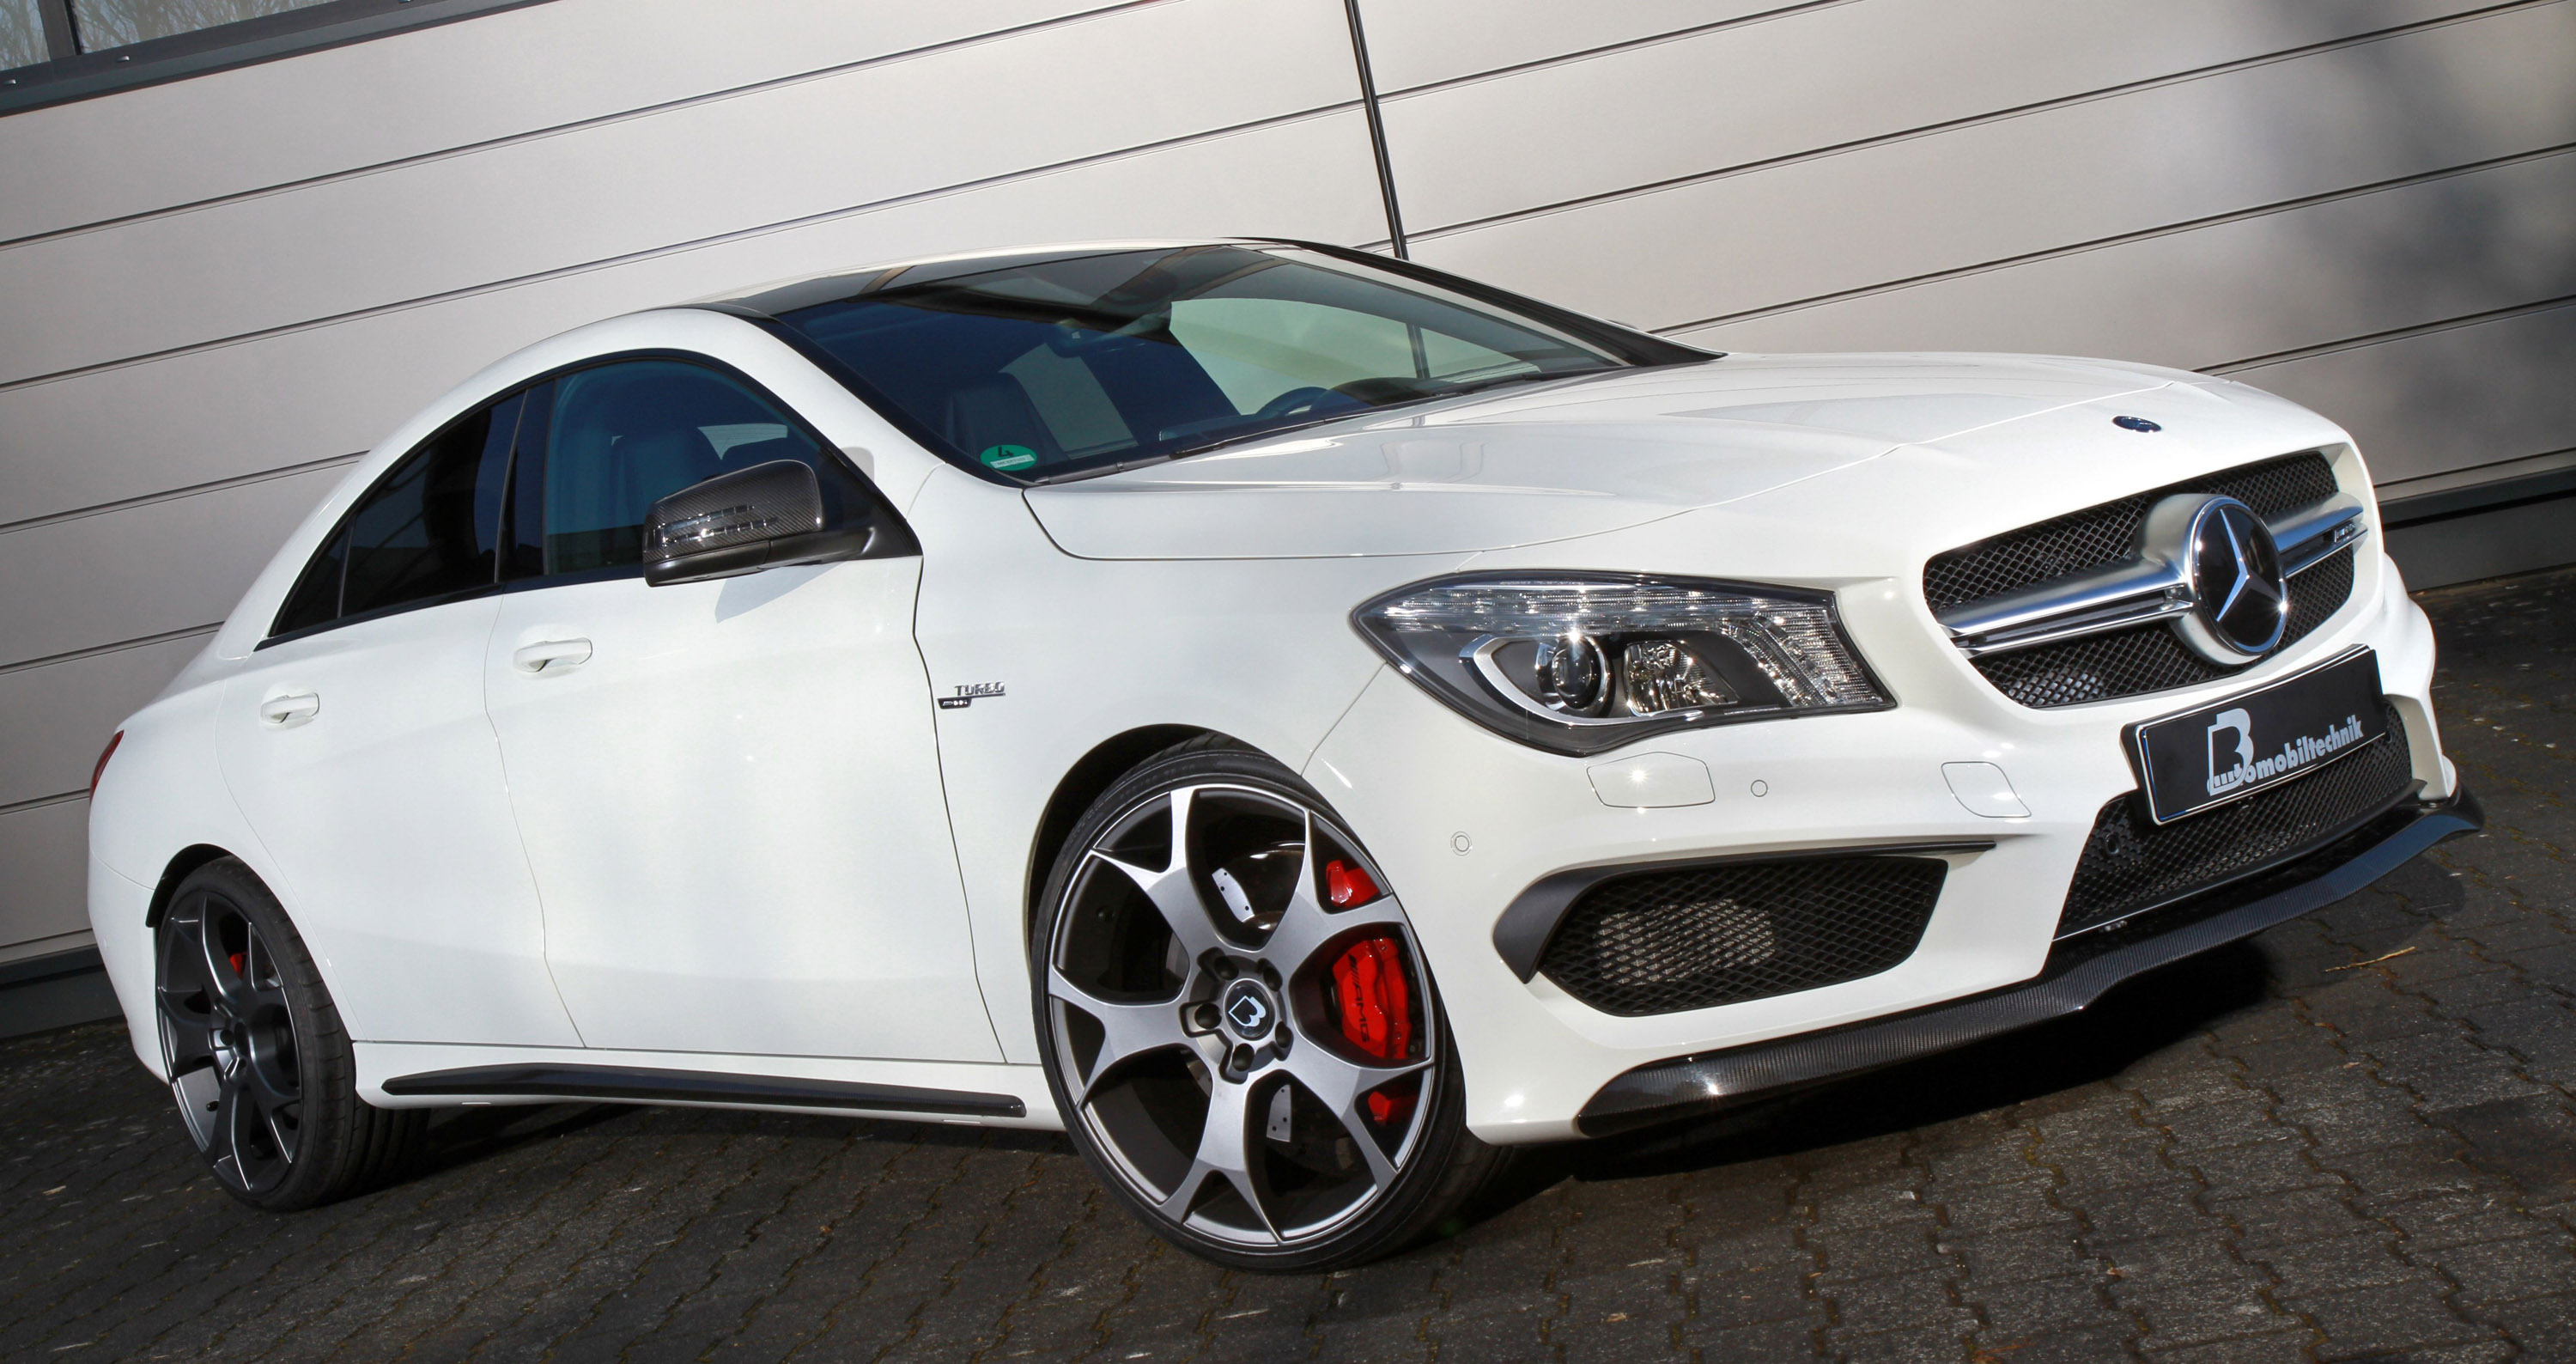 B b mercedes benz cla 45 amg is capable of up to 450 hp 580 nm for Mercedes benze cla